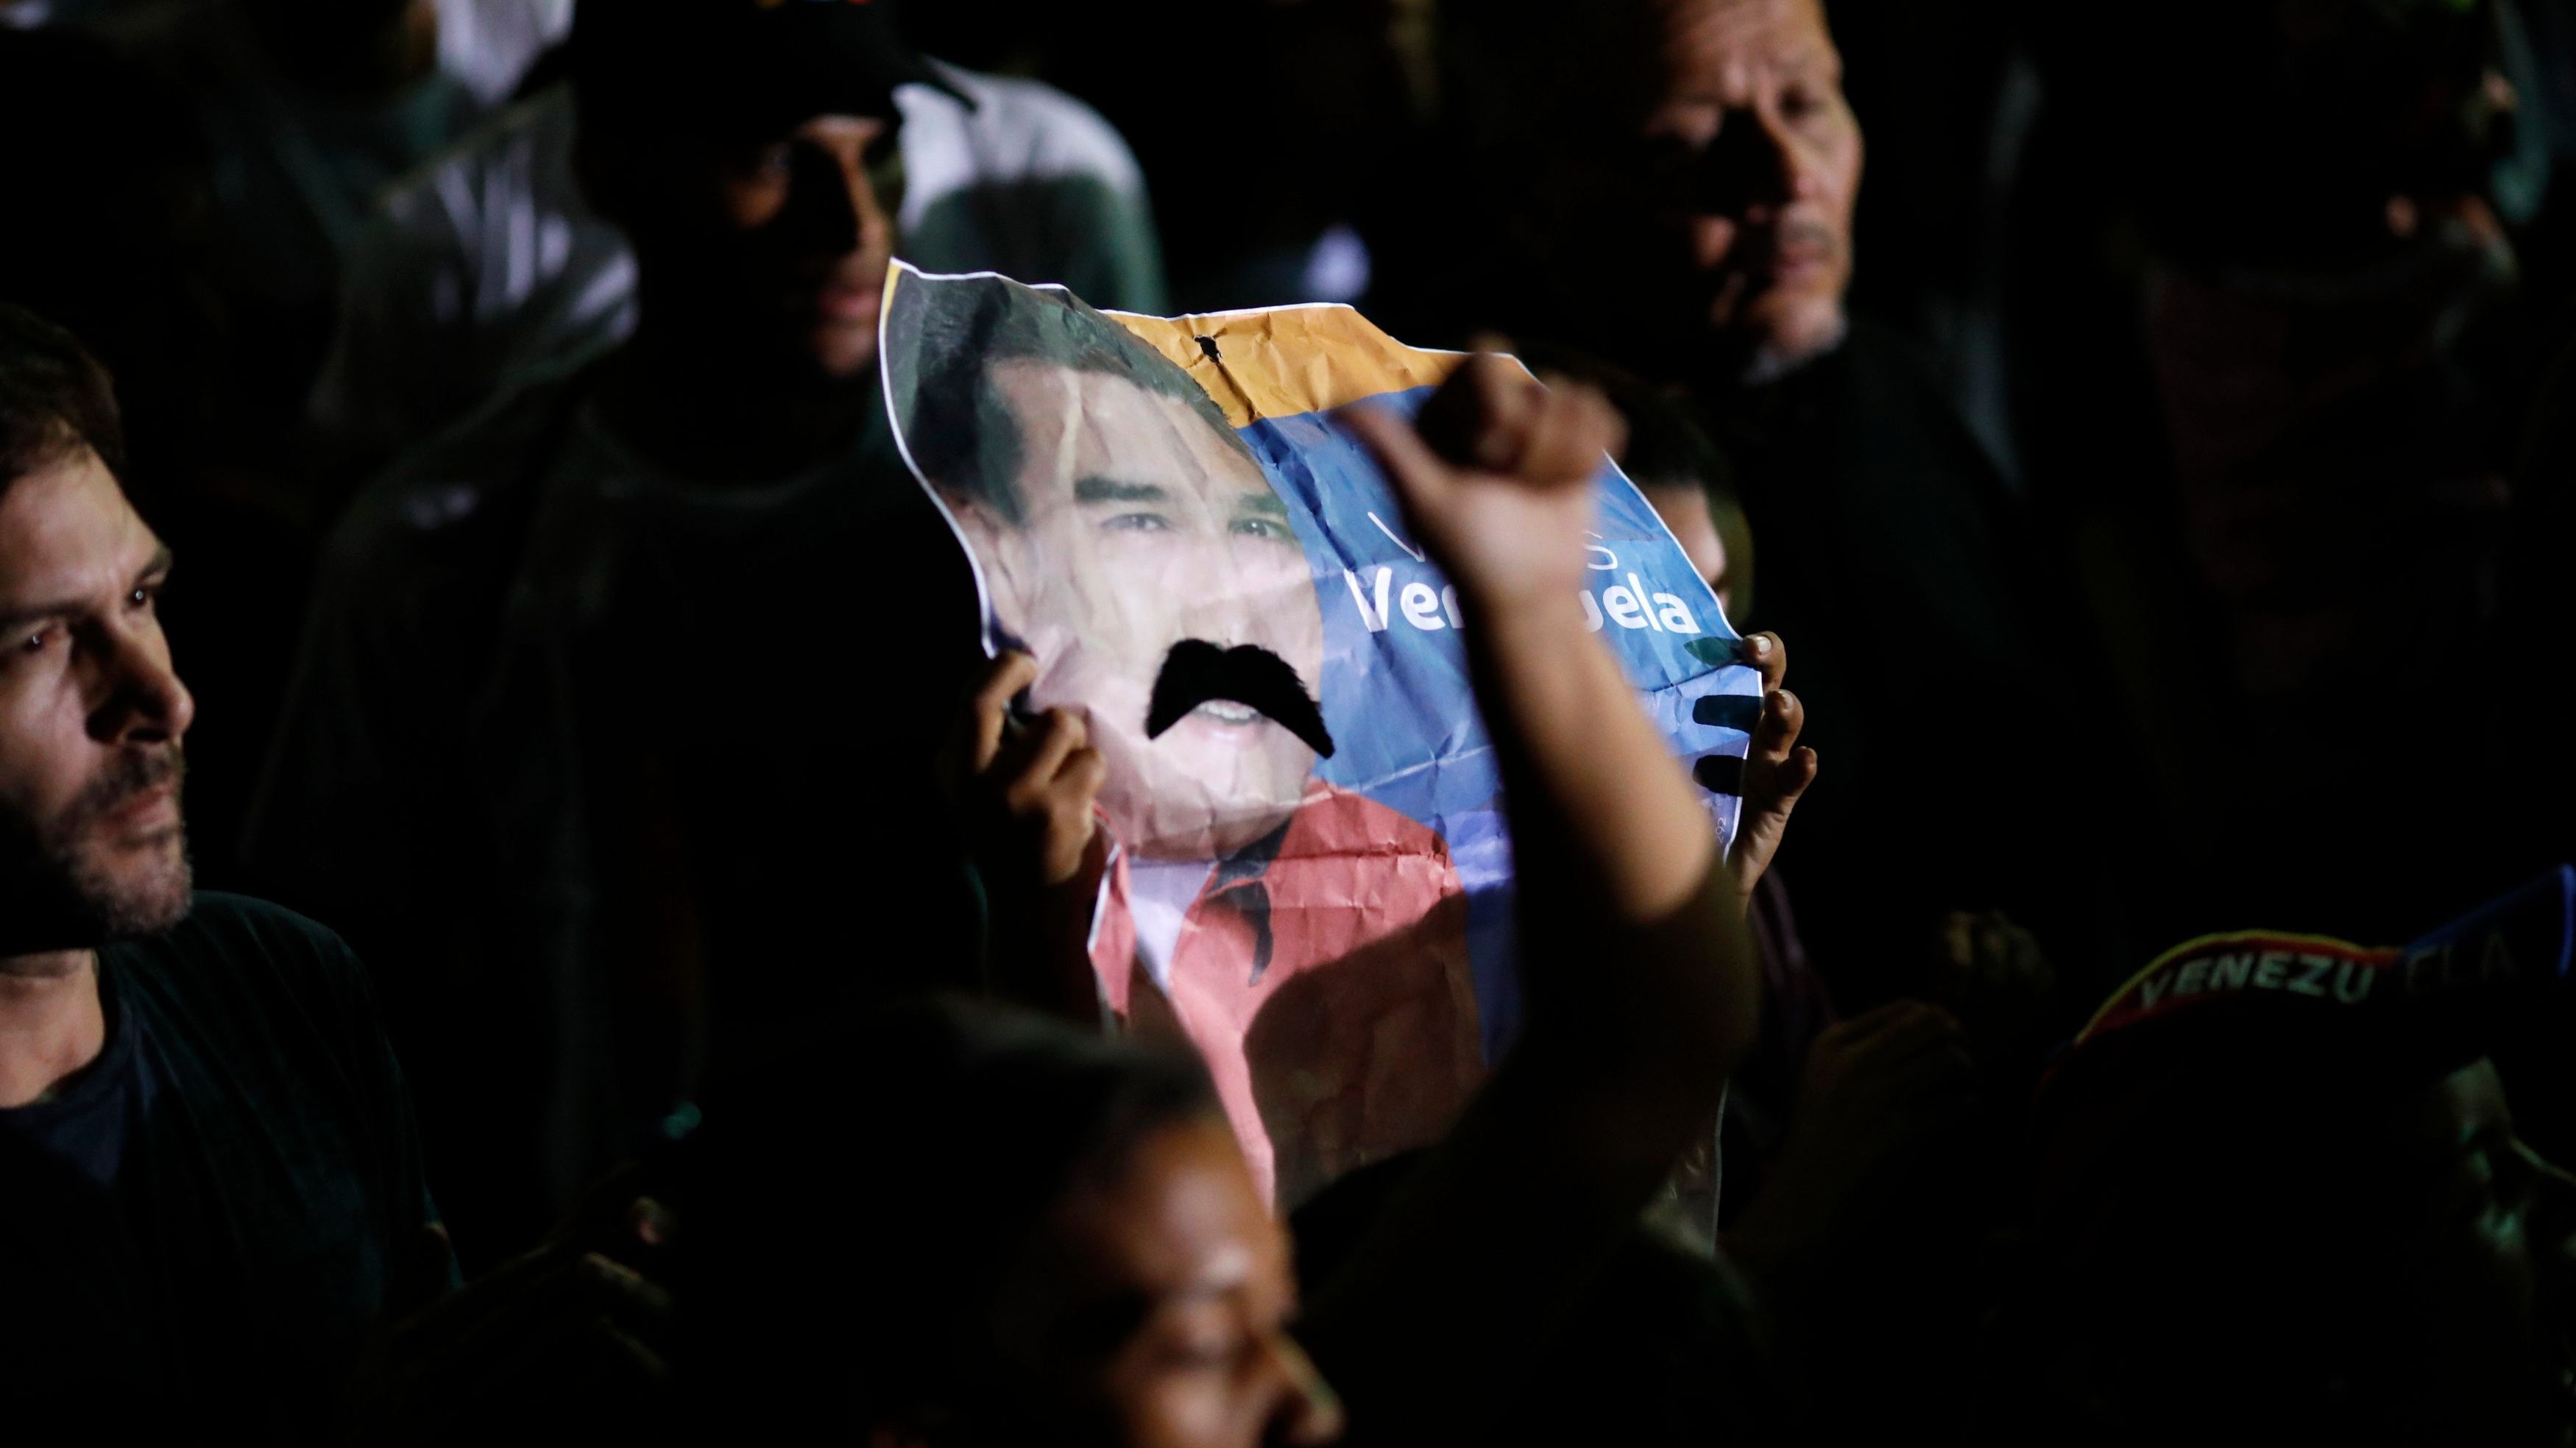 An image depicting Venezuela's President Nicolas Maduro's mustache is held up while he speaks after the results of the election were released